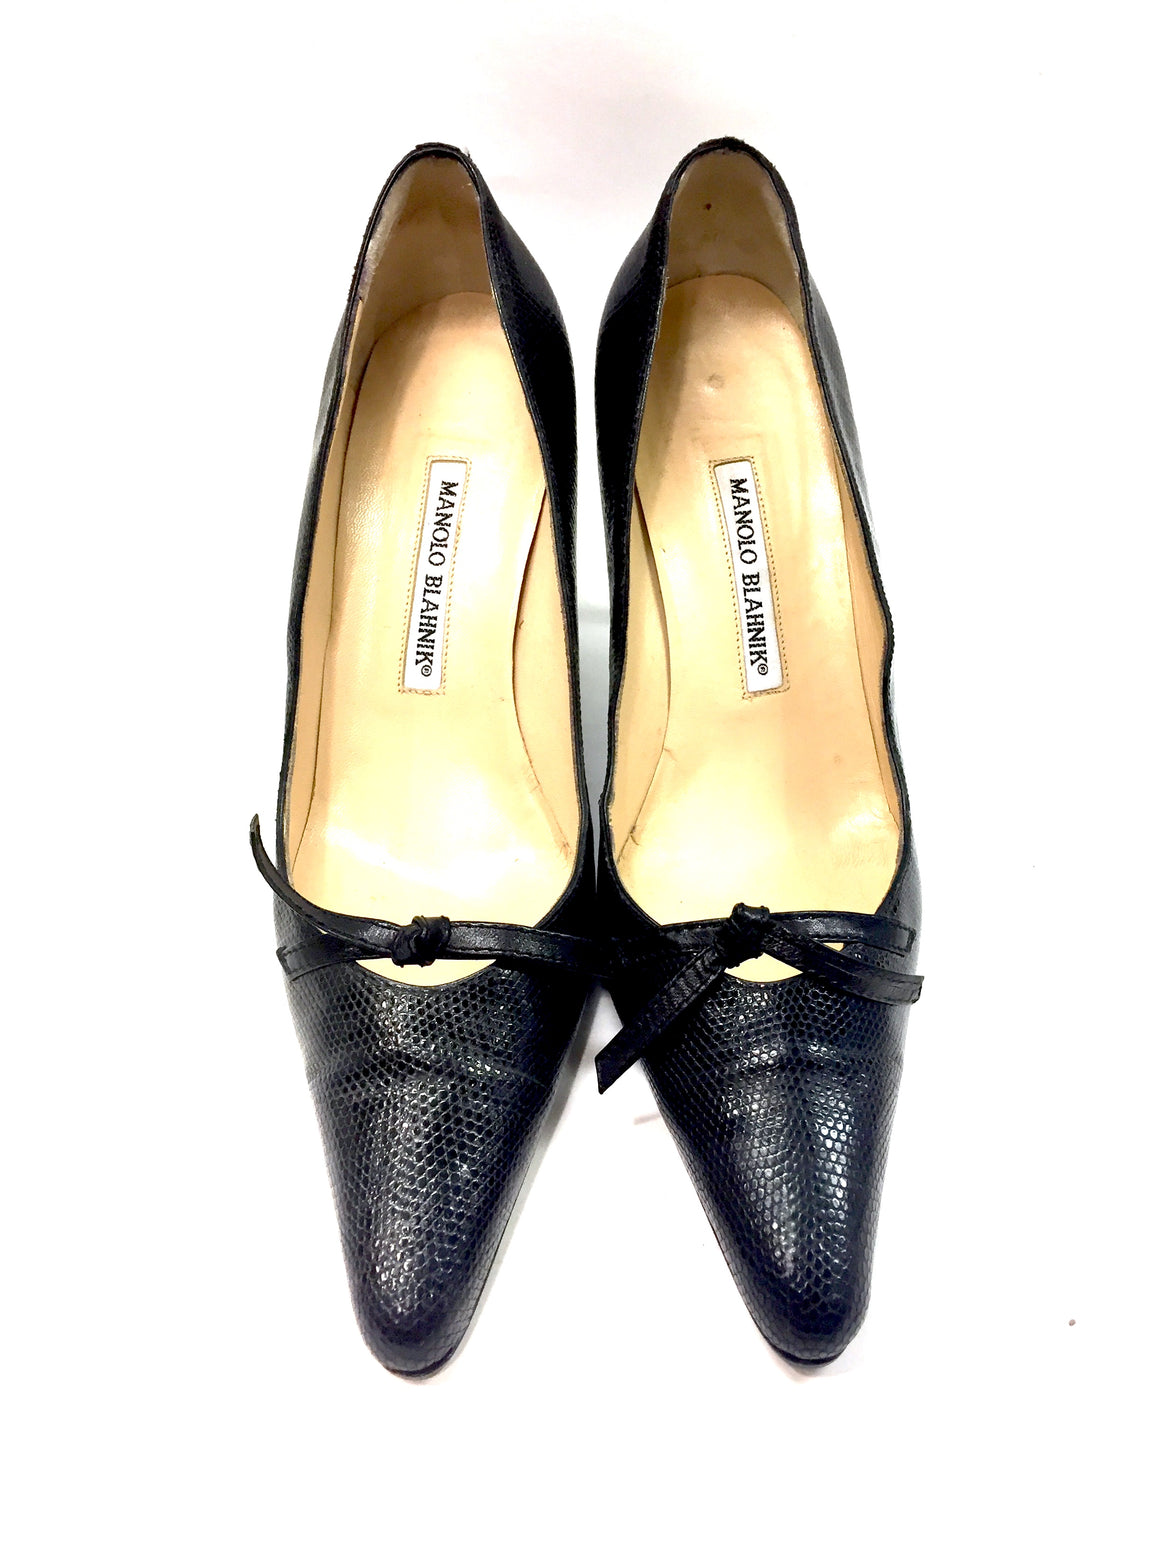 MANOLO BLAHNIK Black Lizard Skin Leather Knot Accent hi-Heel Pumps Sz39